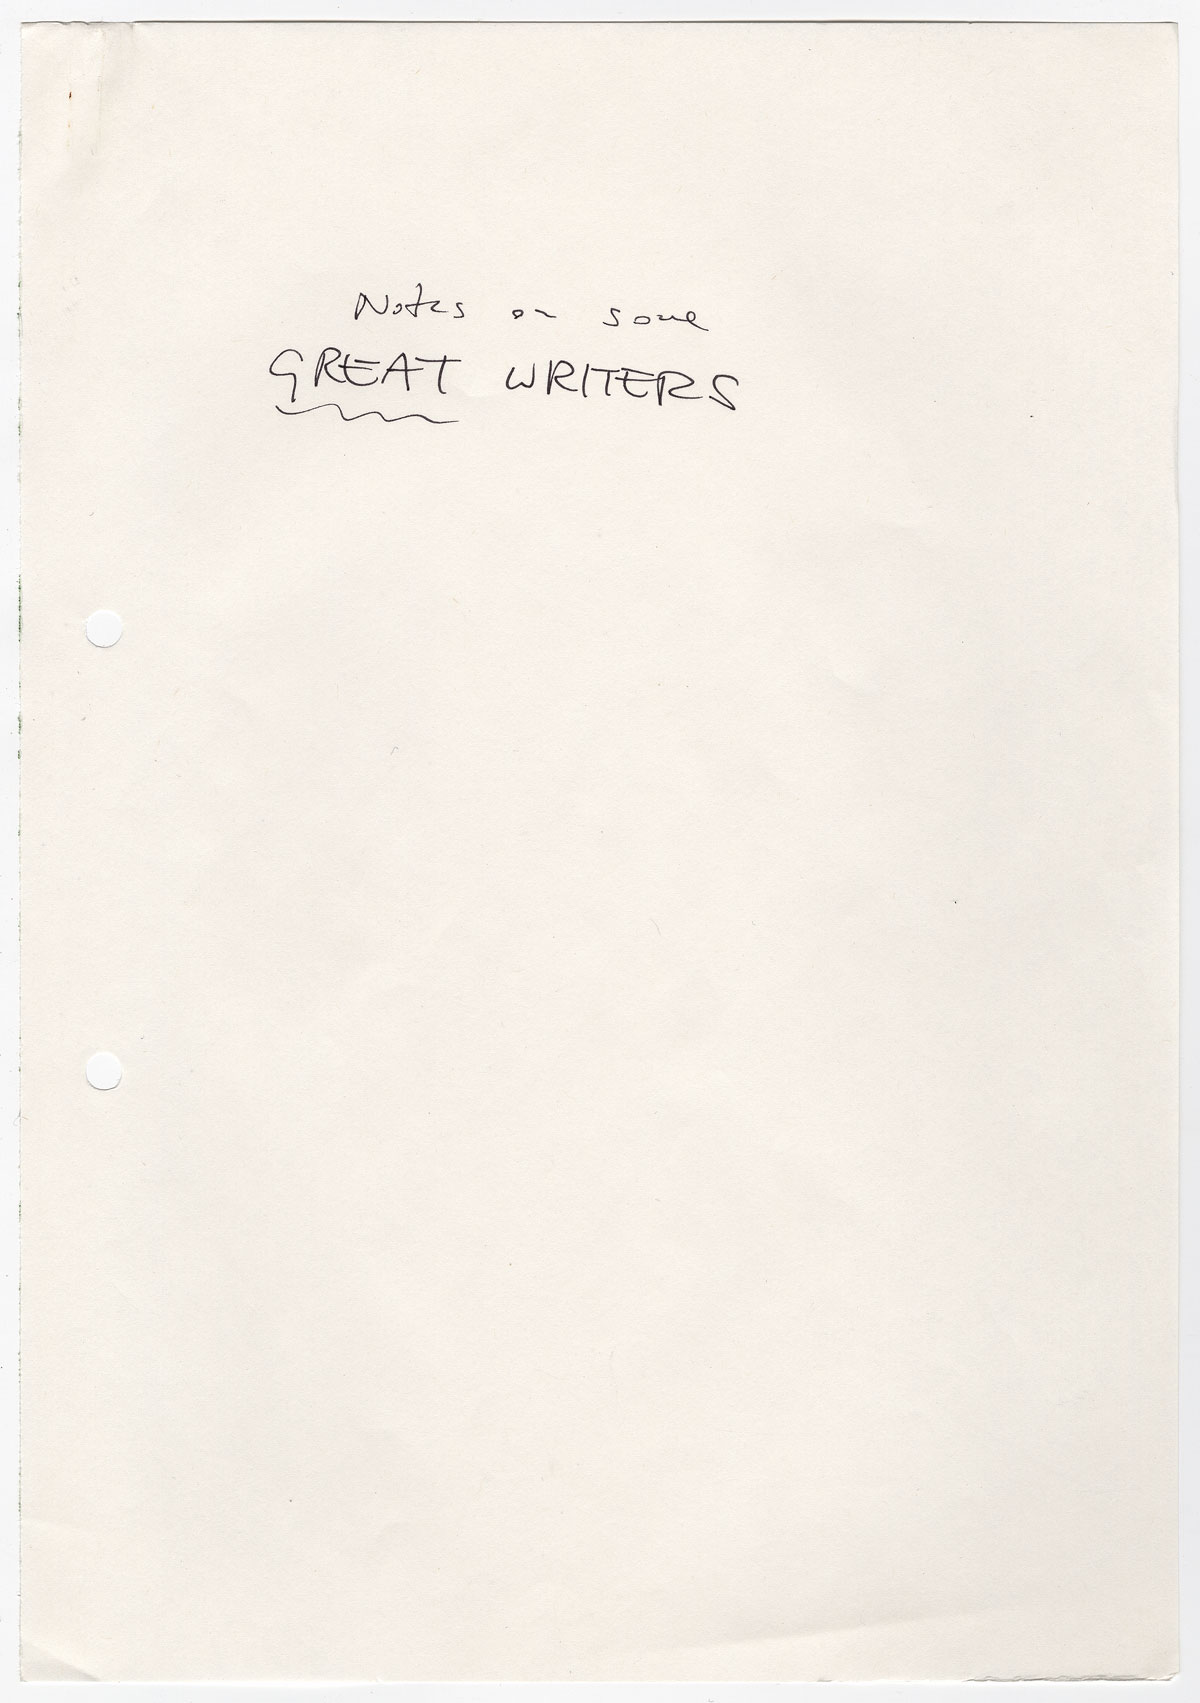 """Kazuo Ishiguro's cover sheet for """"Notes on some great writers."""""""